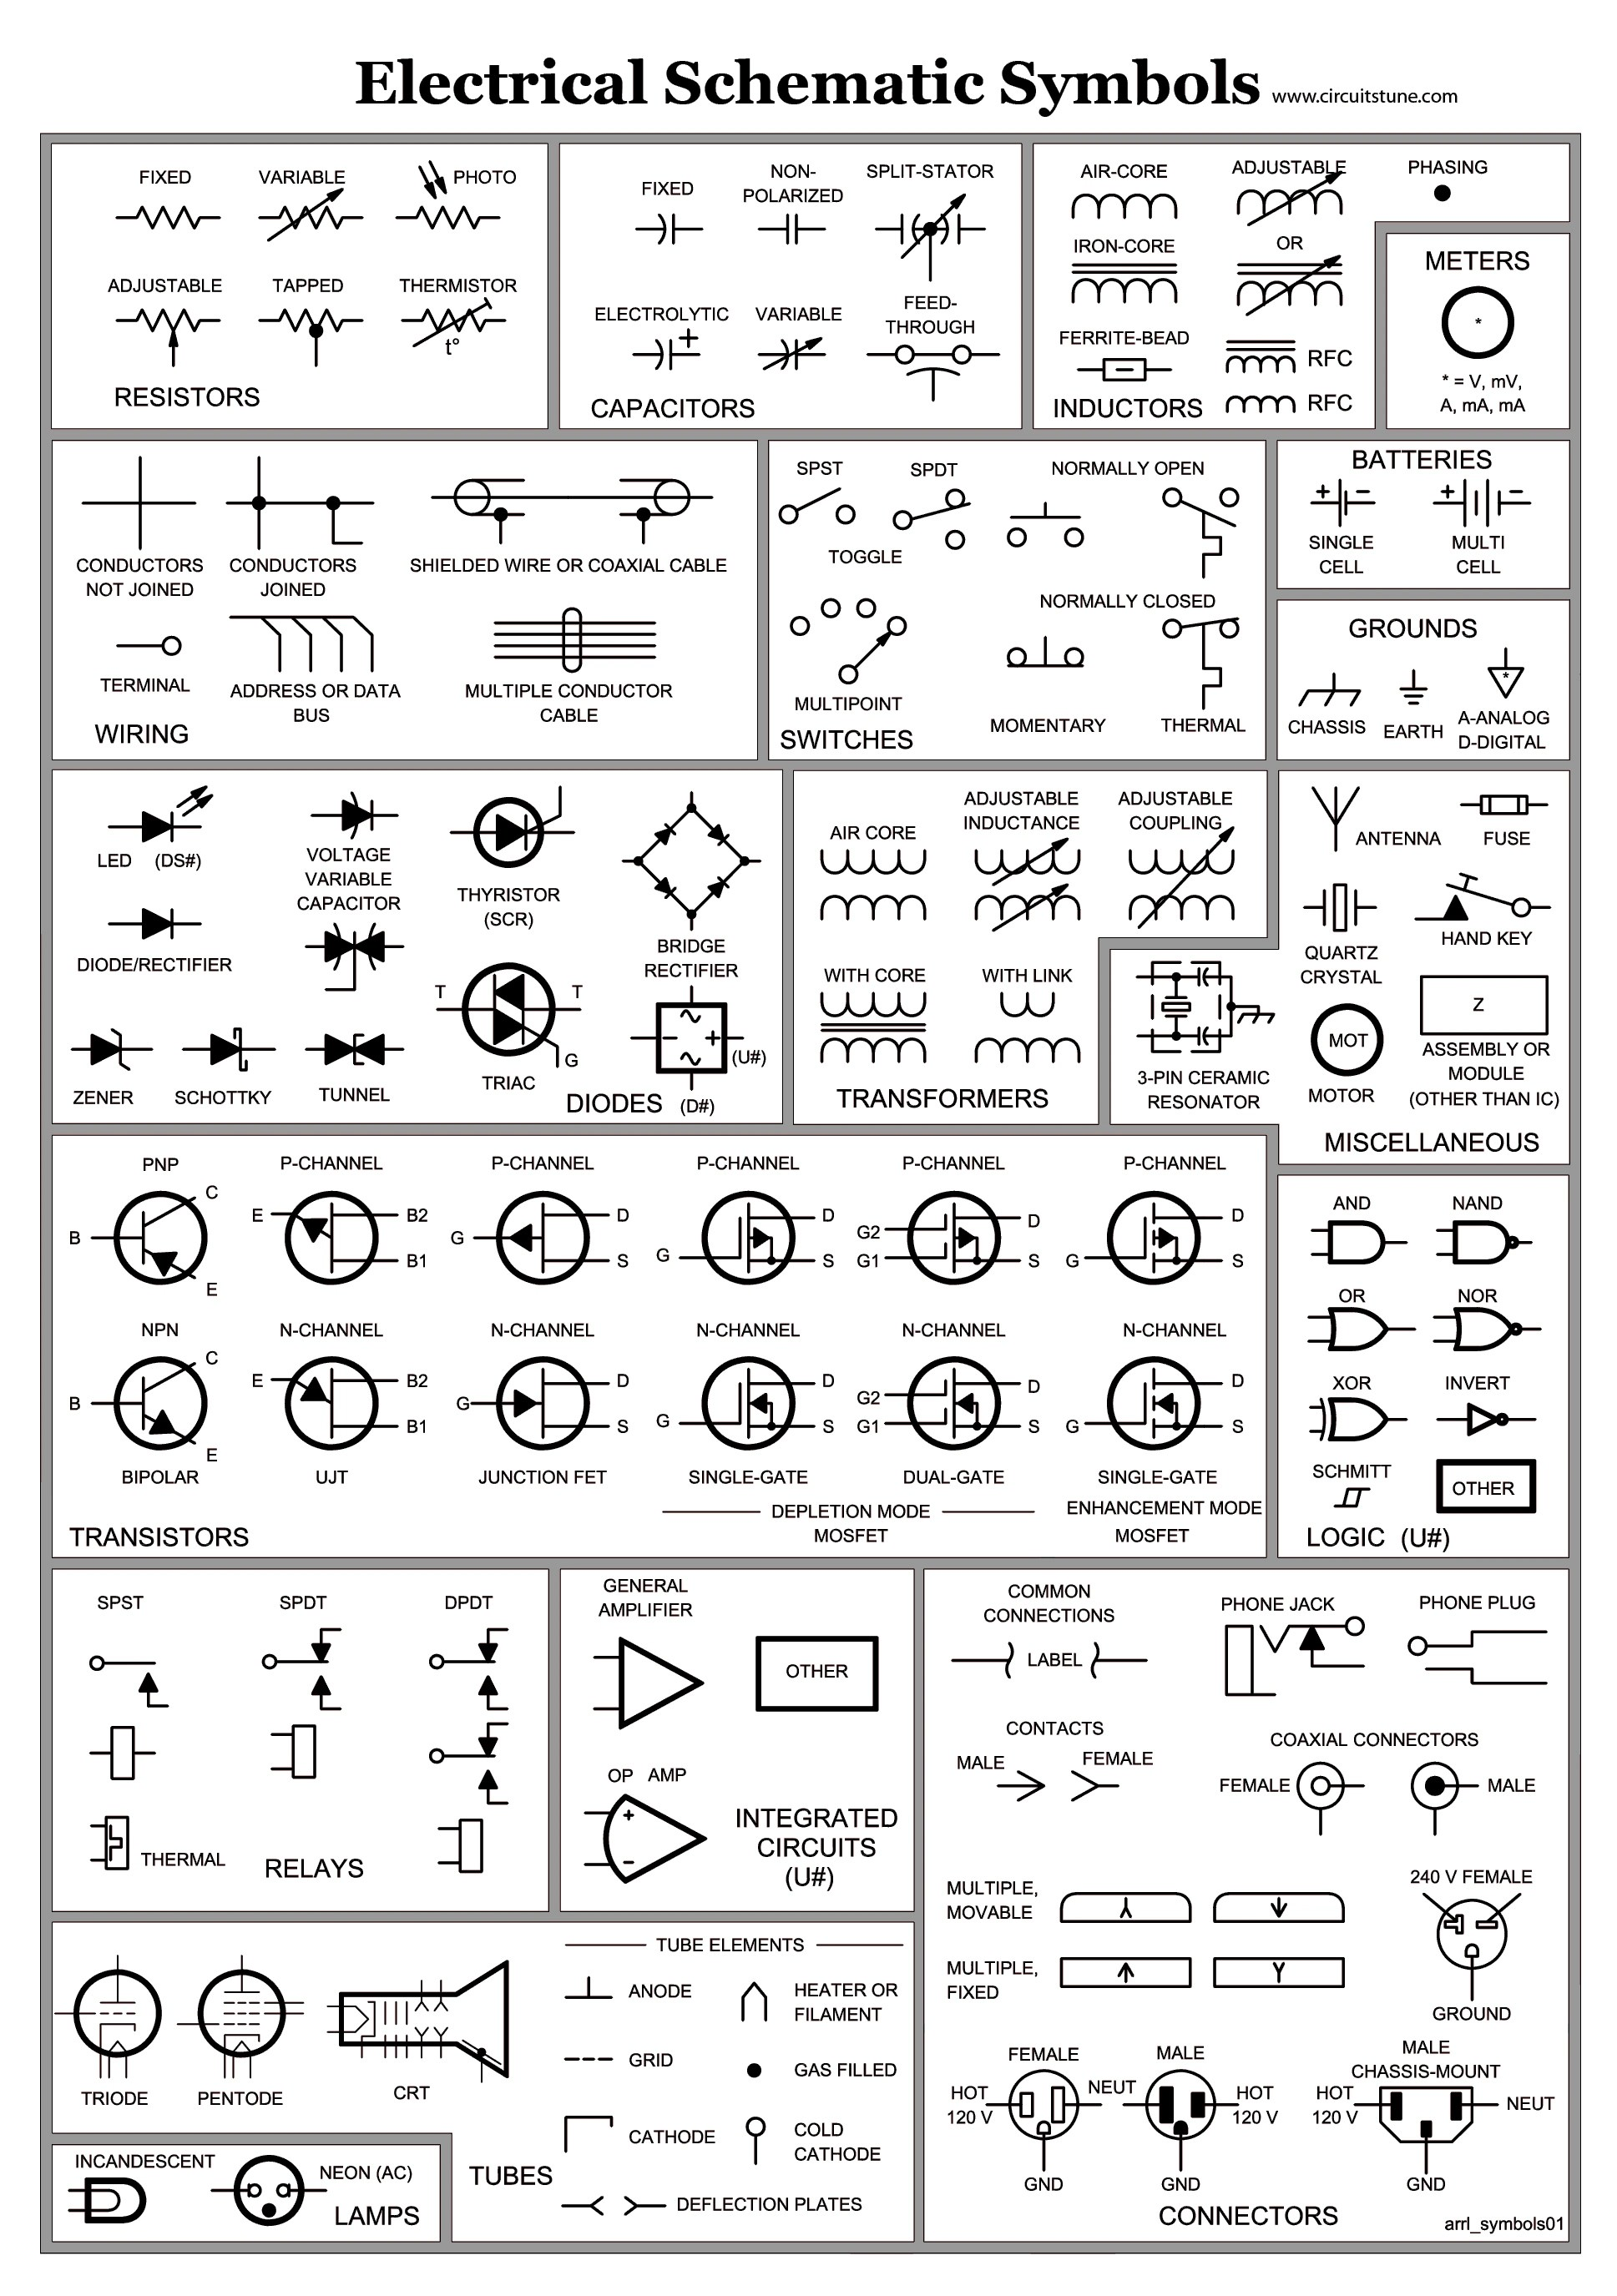 hight resolution of circuit schematic symbols bmet wiki fandom powered by wikia electrical schematic diagram symbols on electrical circuit schematic